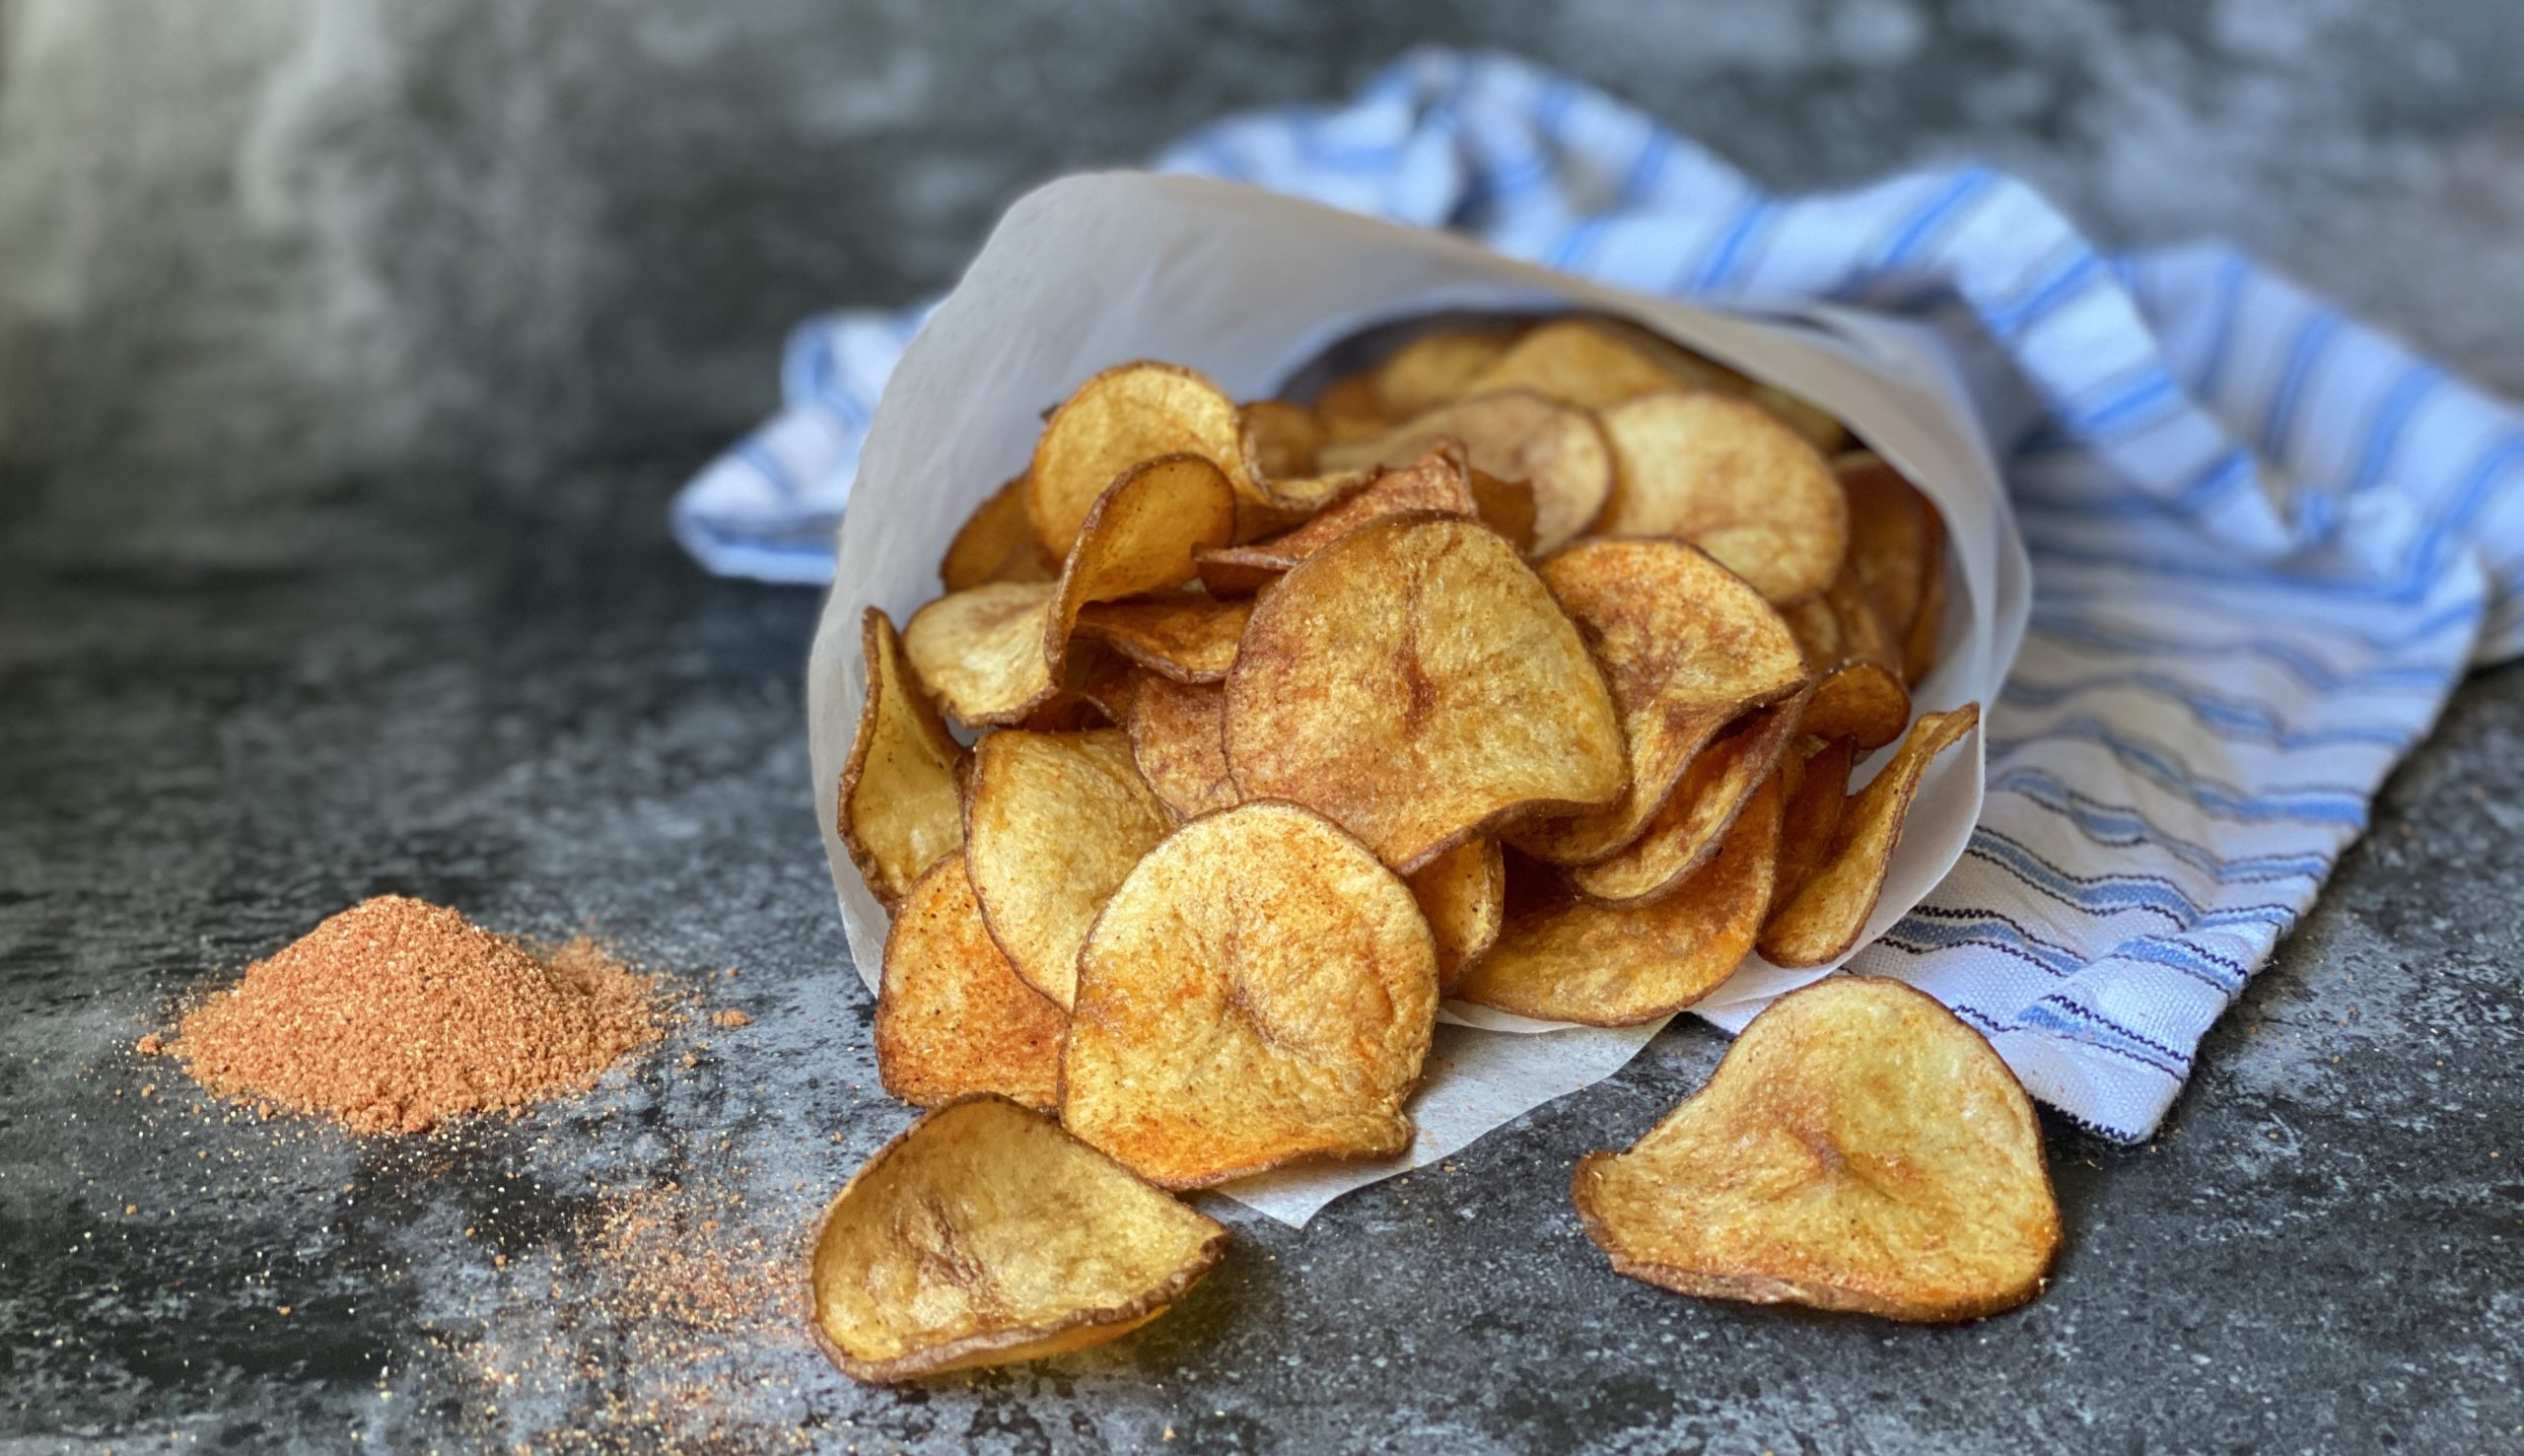 Smoked BBQ potato chips.